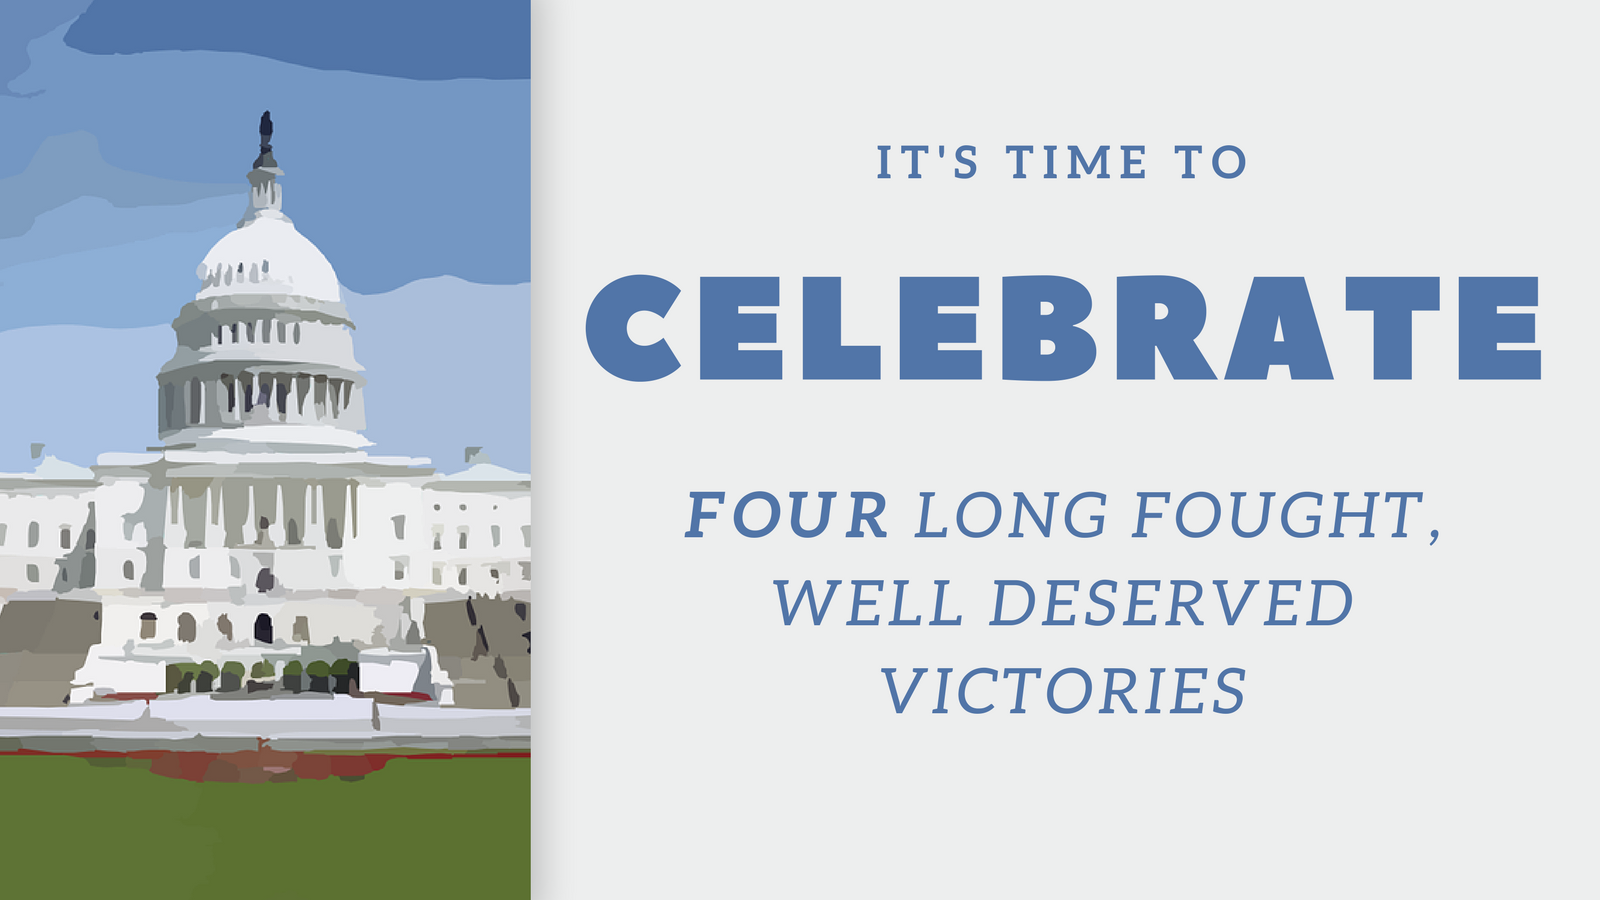 Four victories. Let's celebrate!